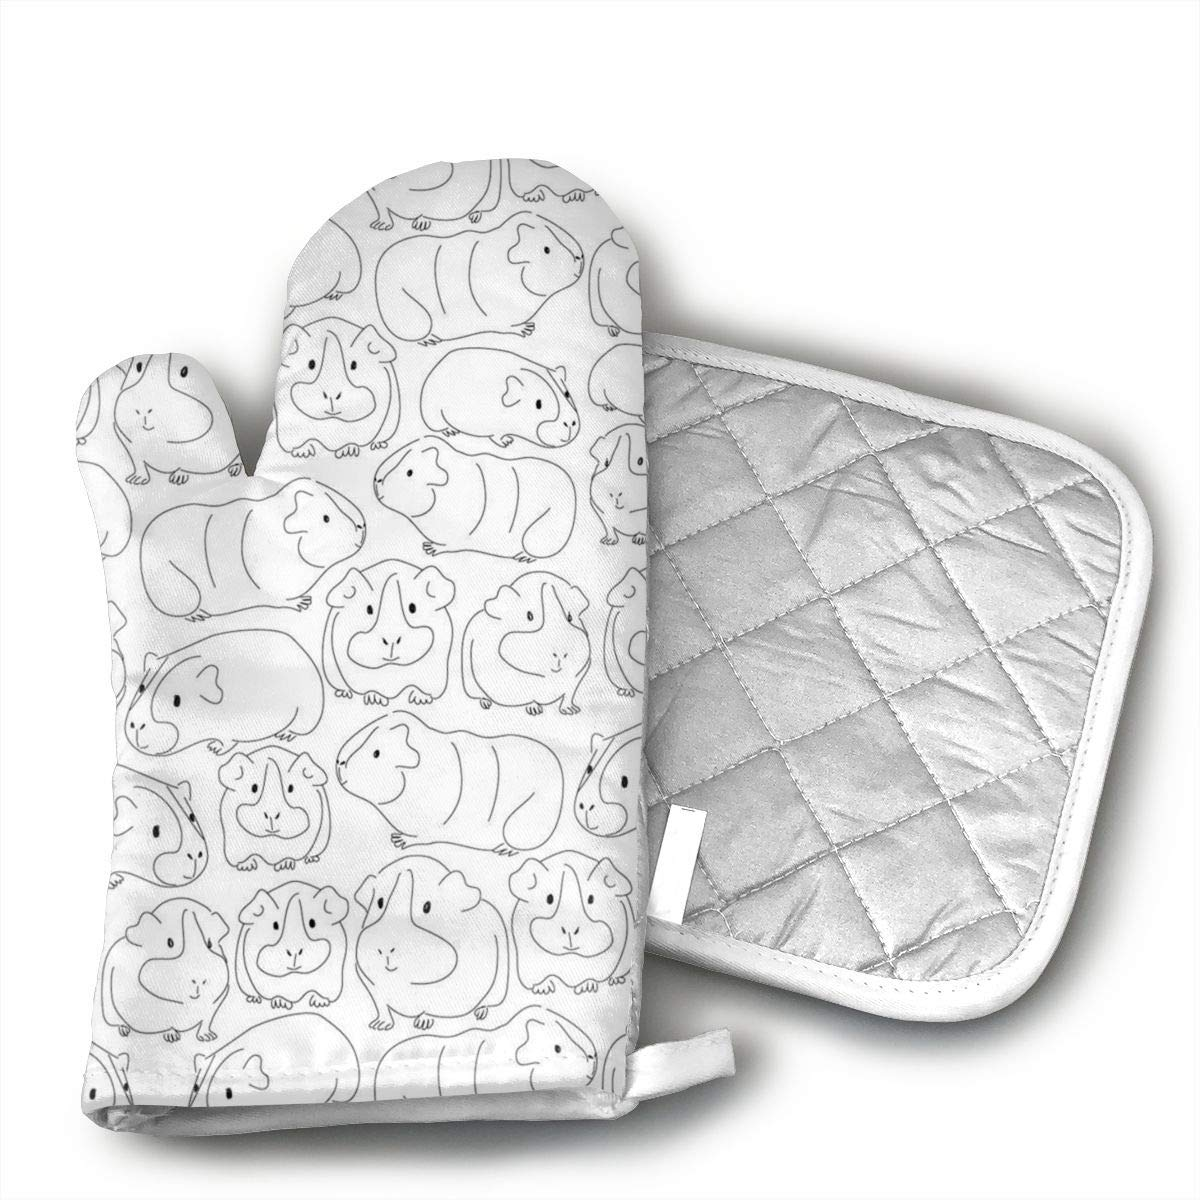 Jiqnajn6 Sketchy Guinea Pigs Oven Mitts,Heat Resistant Oven Gloves, Safe Cooking Baking, Grilling, Barbecue, Machine Washable,Pot Holders.